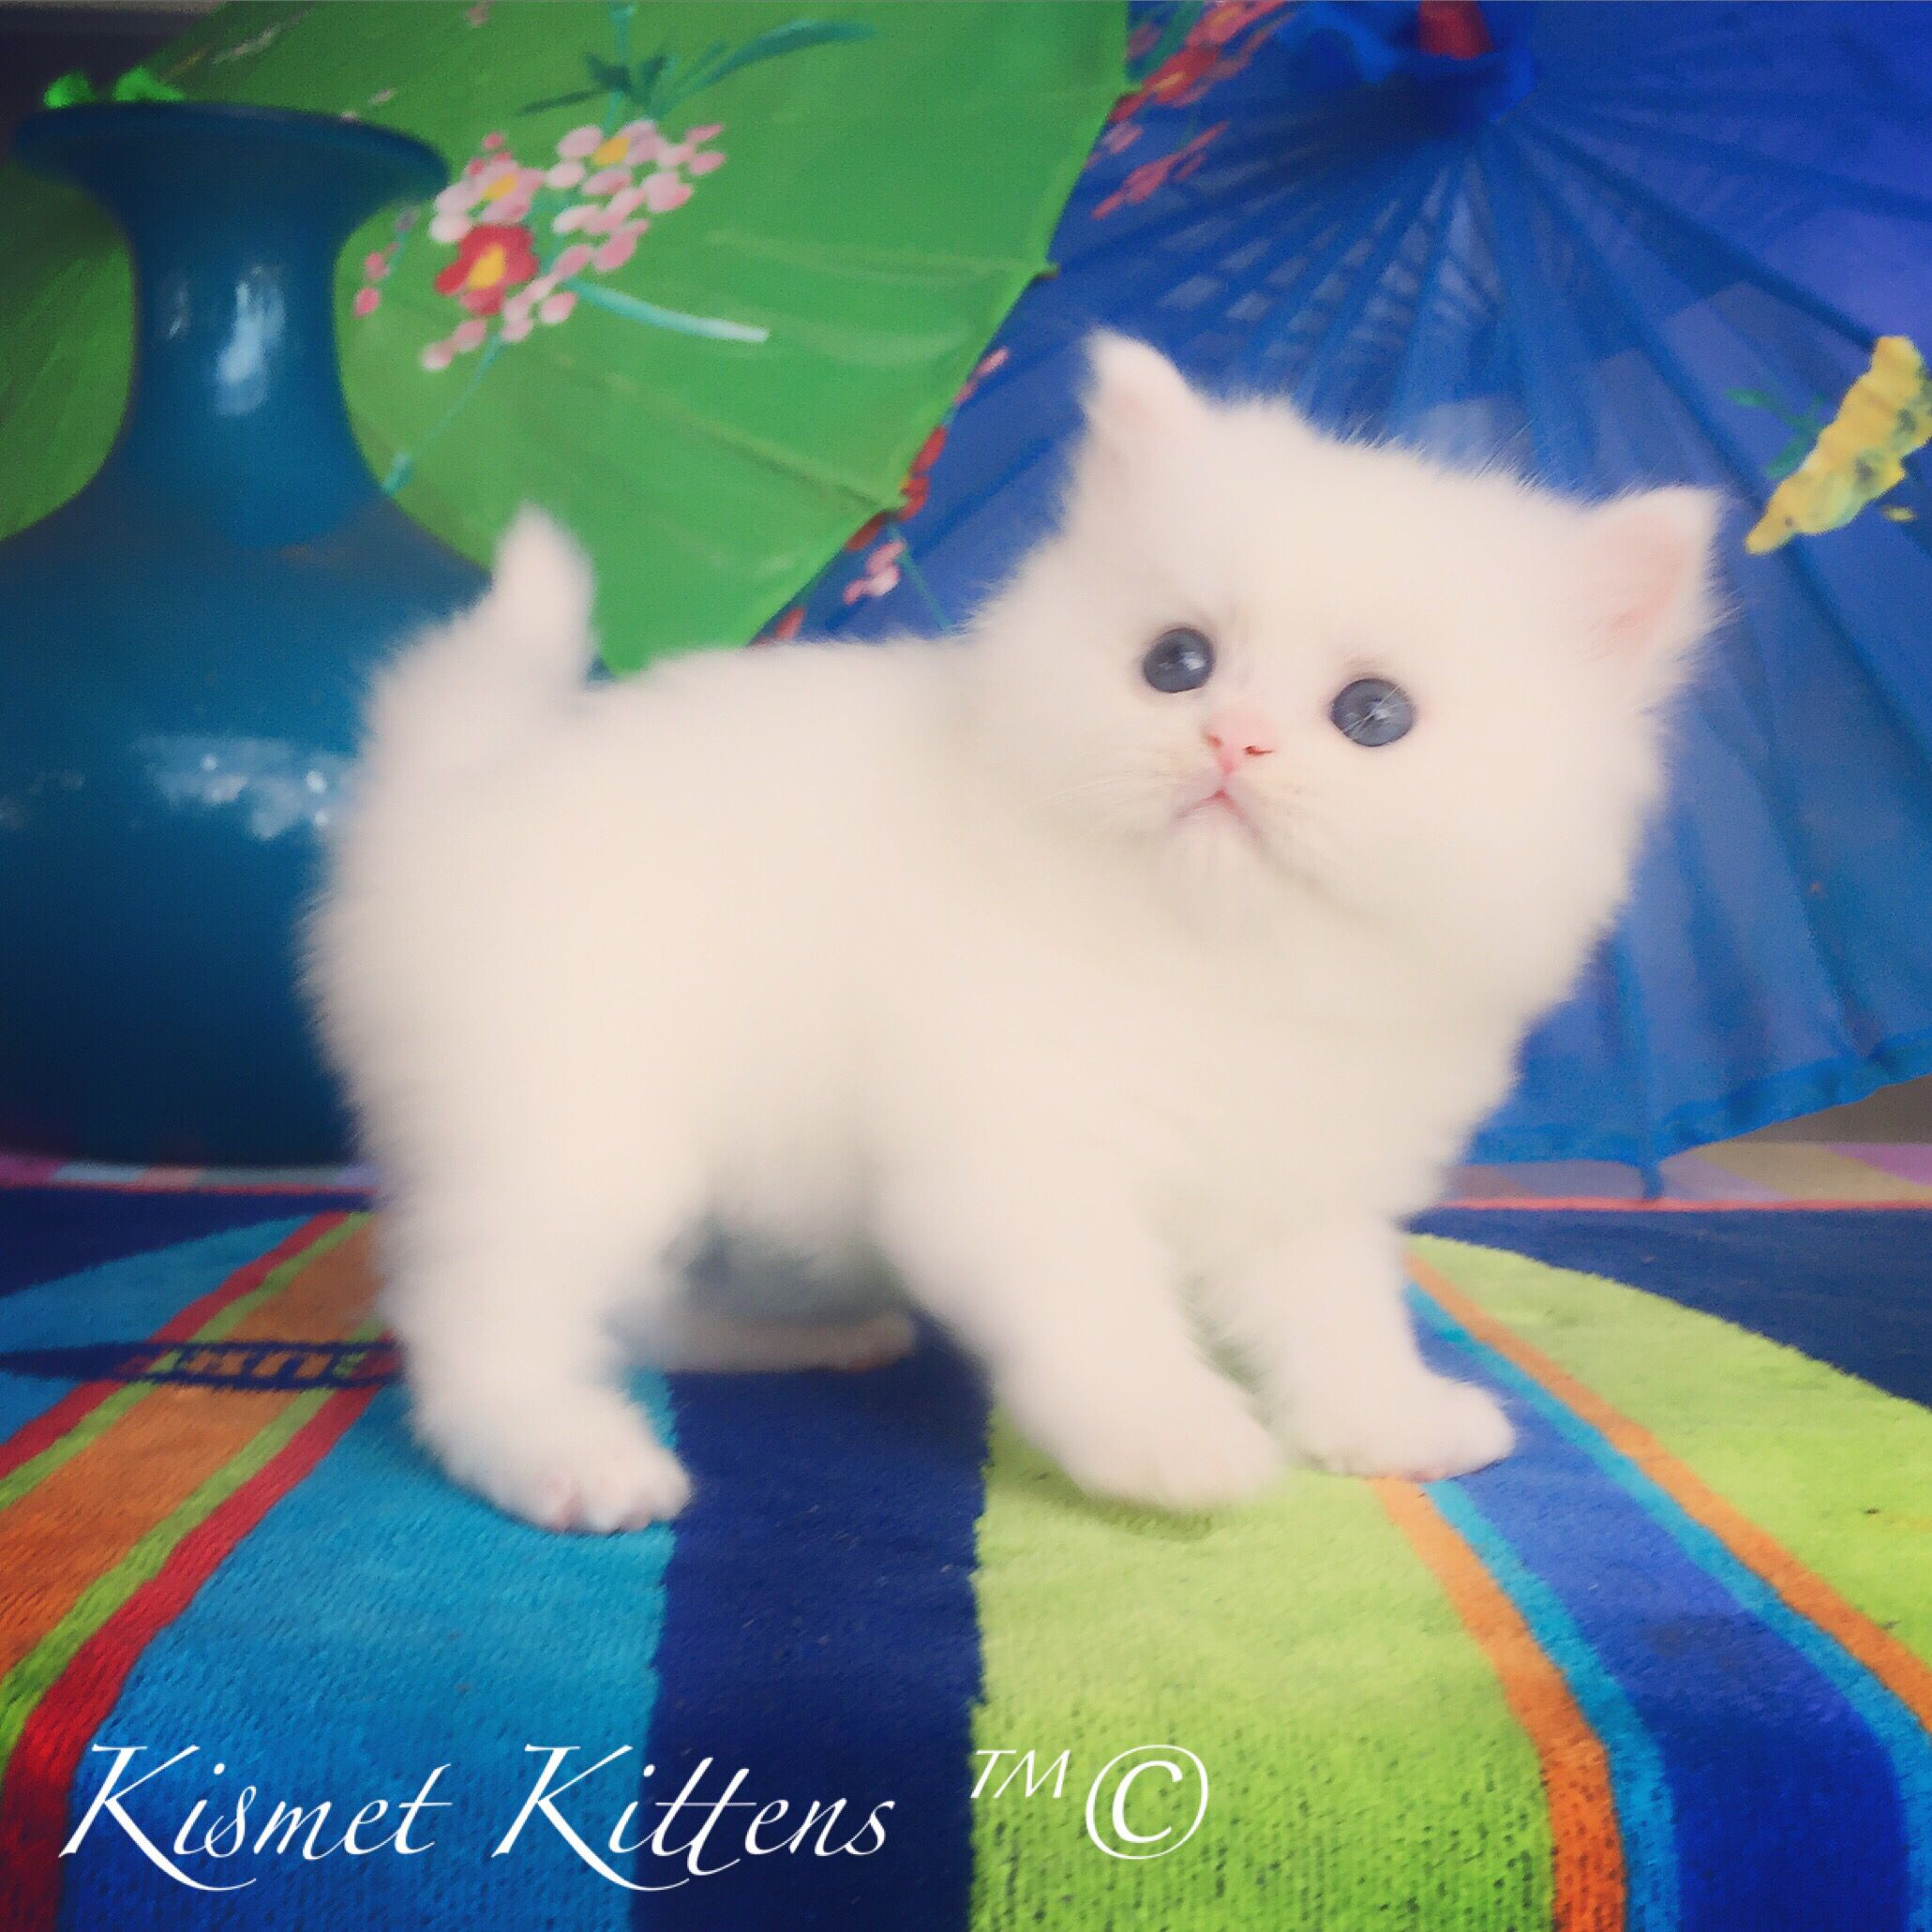 Kismet Kittens For Sale White Doll Face Persian Kitten Male Ready To Go 9 30 15 To Reserve White Persian Kittens Cats For Sale Teacup Persian Kittens